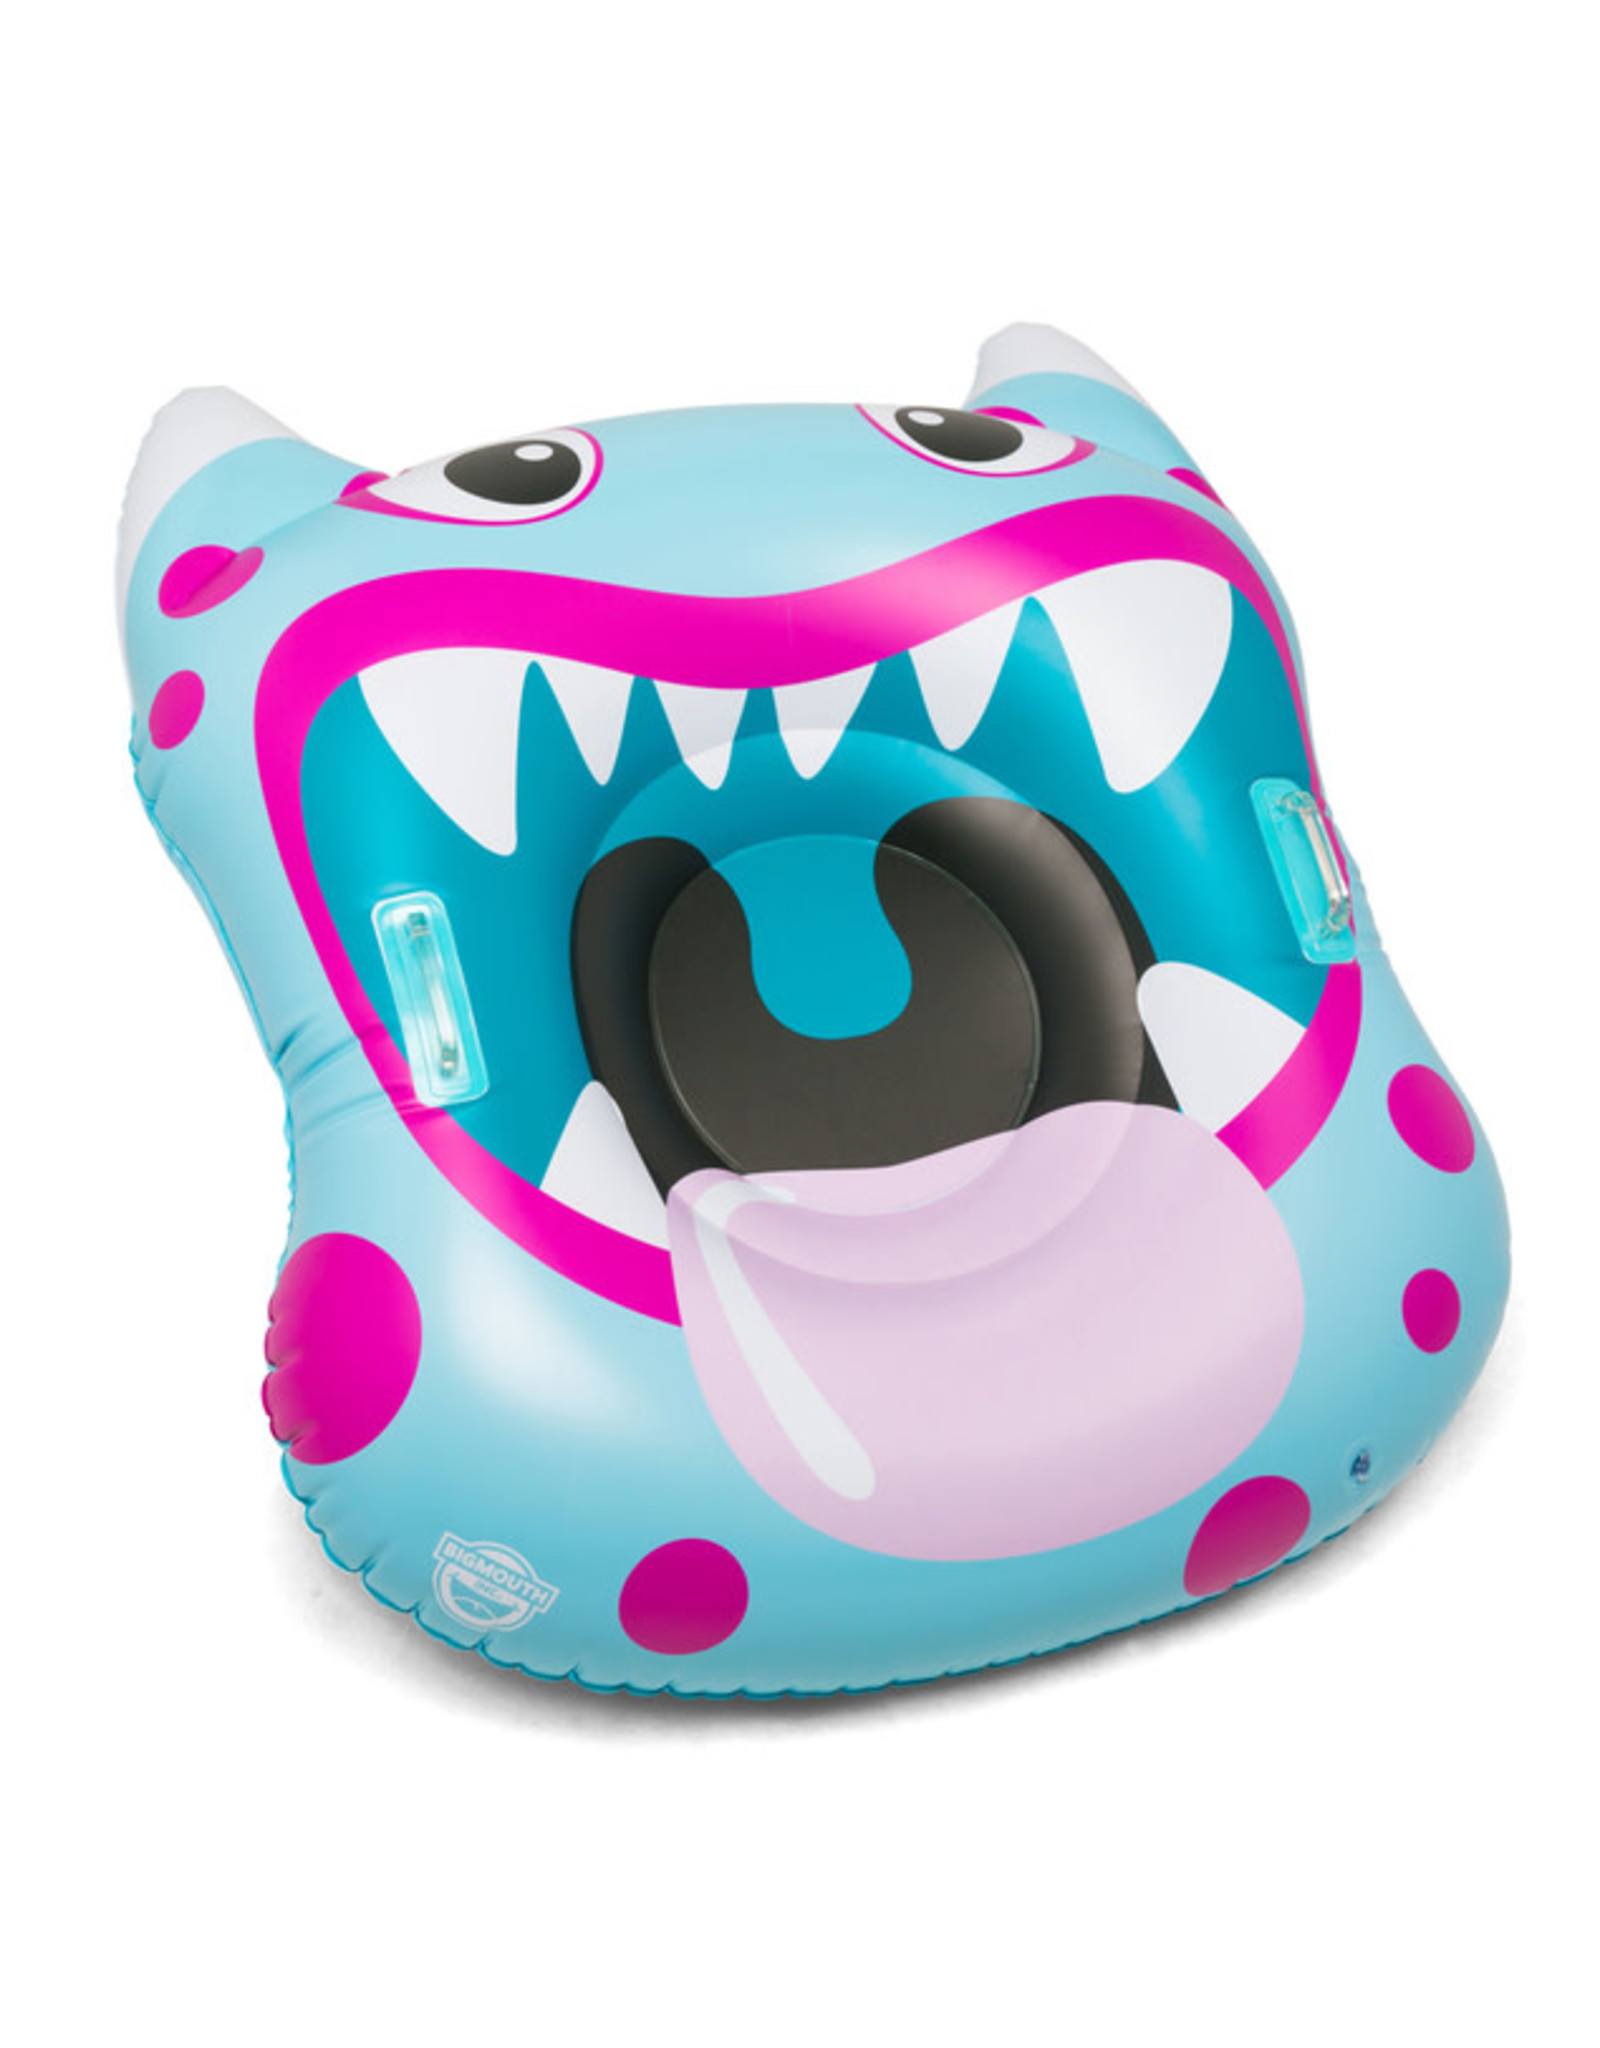 Big Mouth Inc Ice Monster Snow Tube